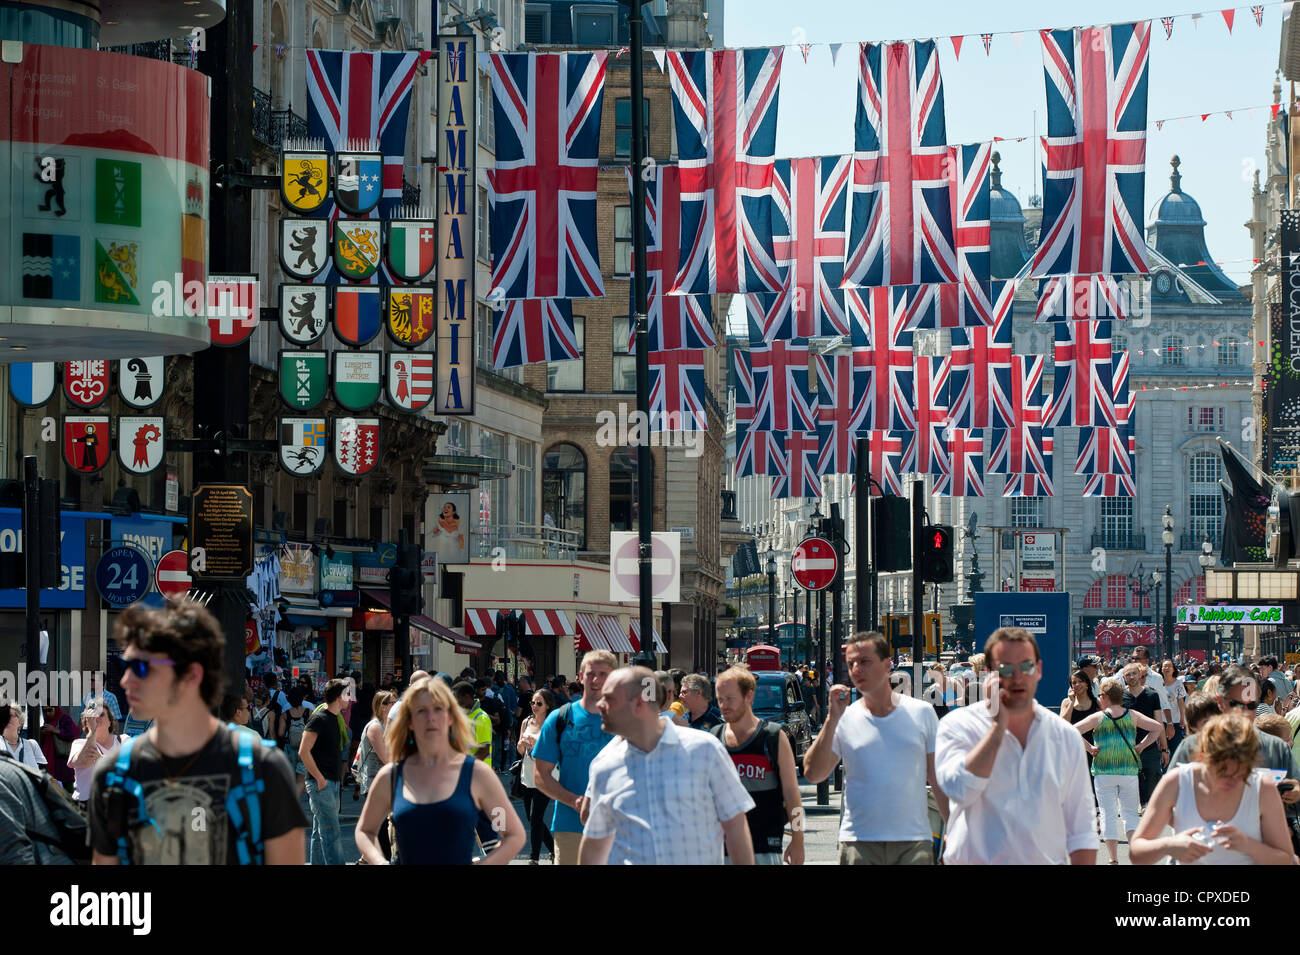 Leicester Square decorated in Union Jacks for Diamond Jubilee, London, United Kingdom - Stock Image